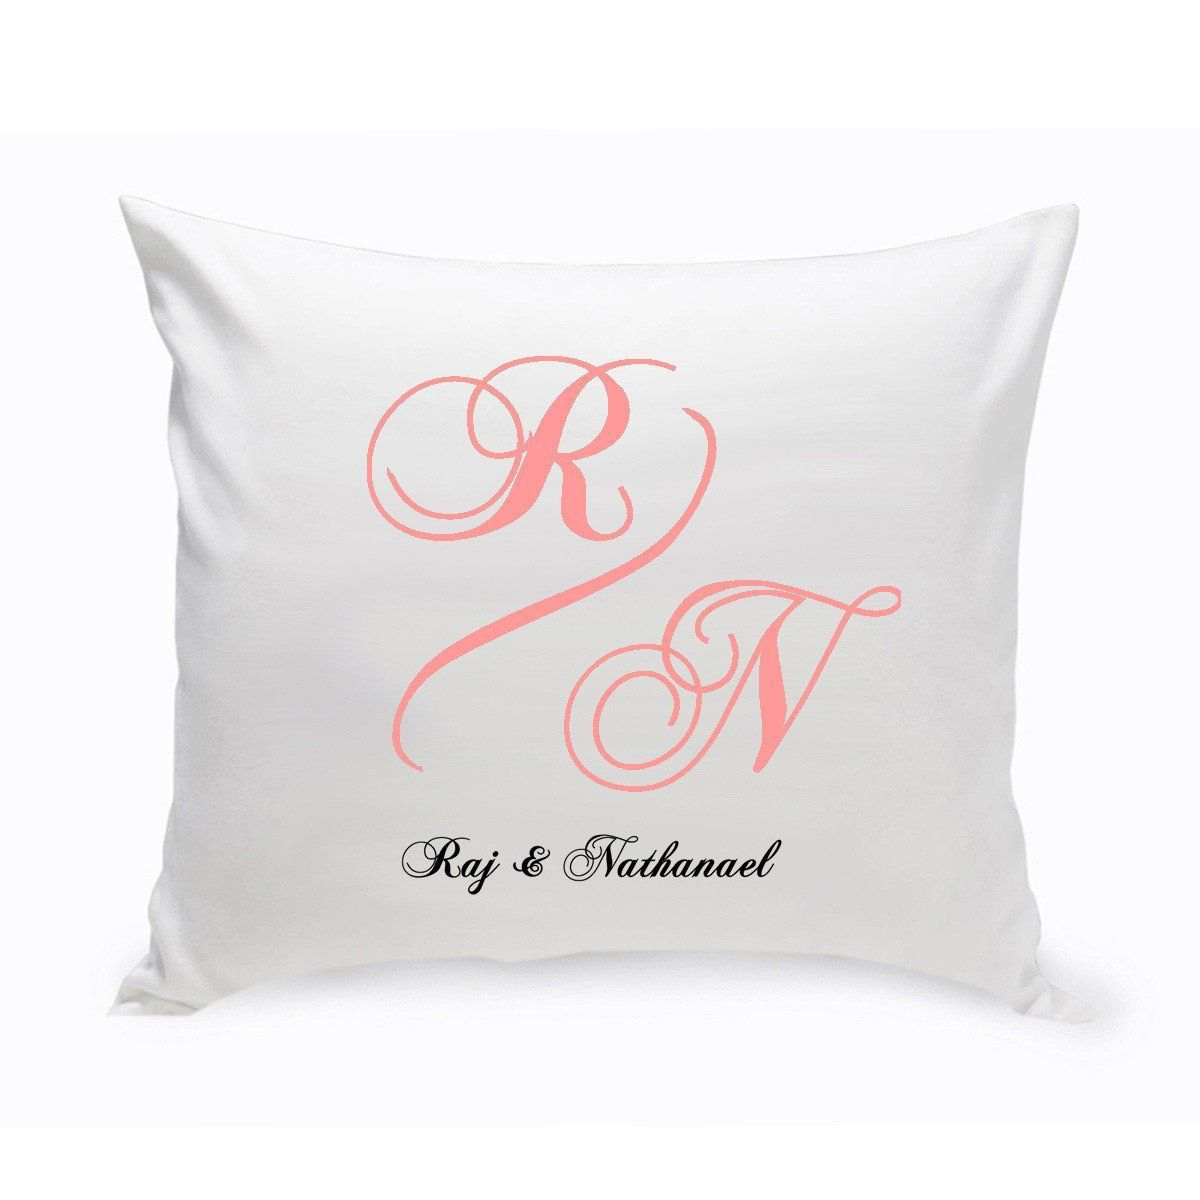 Personalized Monogrammed Throw Pillows - Couples Unity Monogrammed